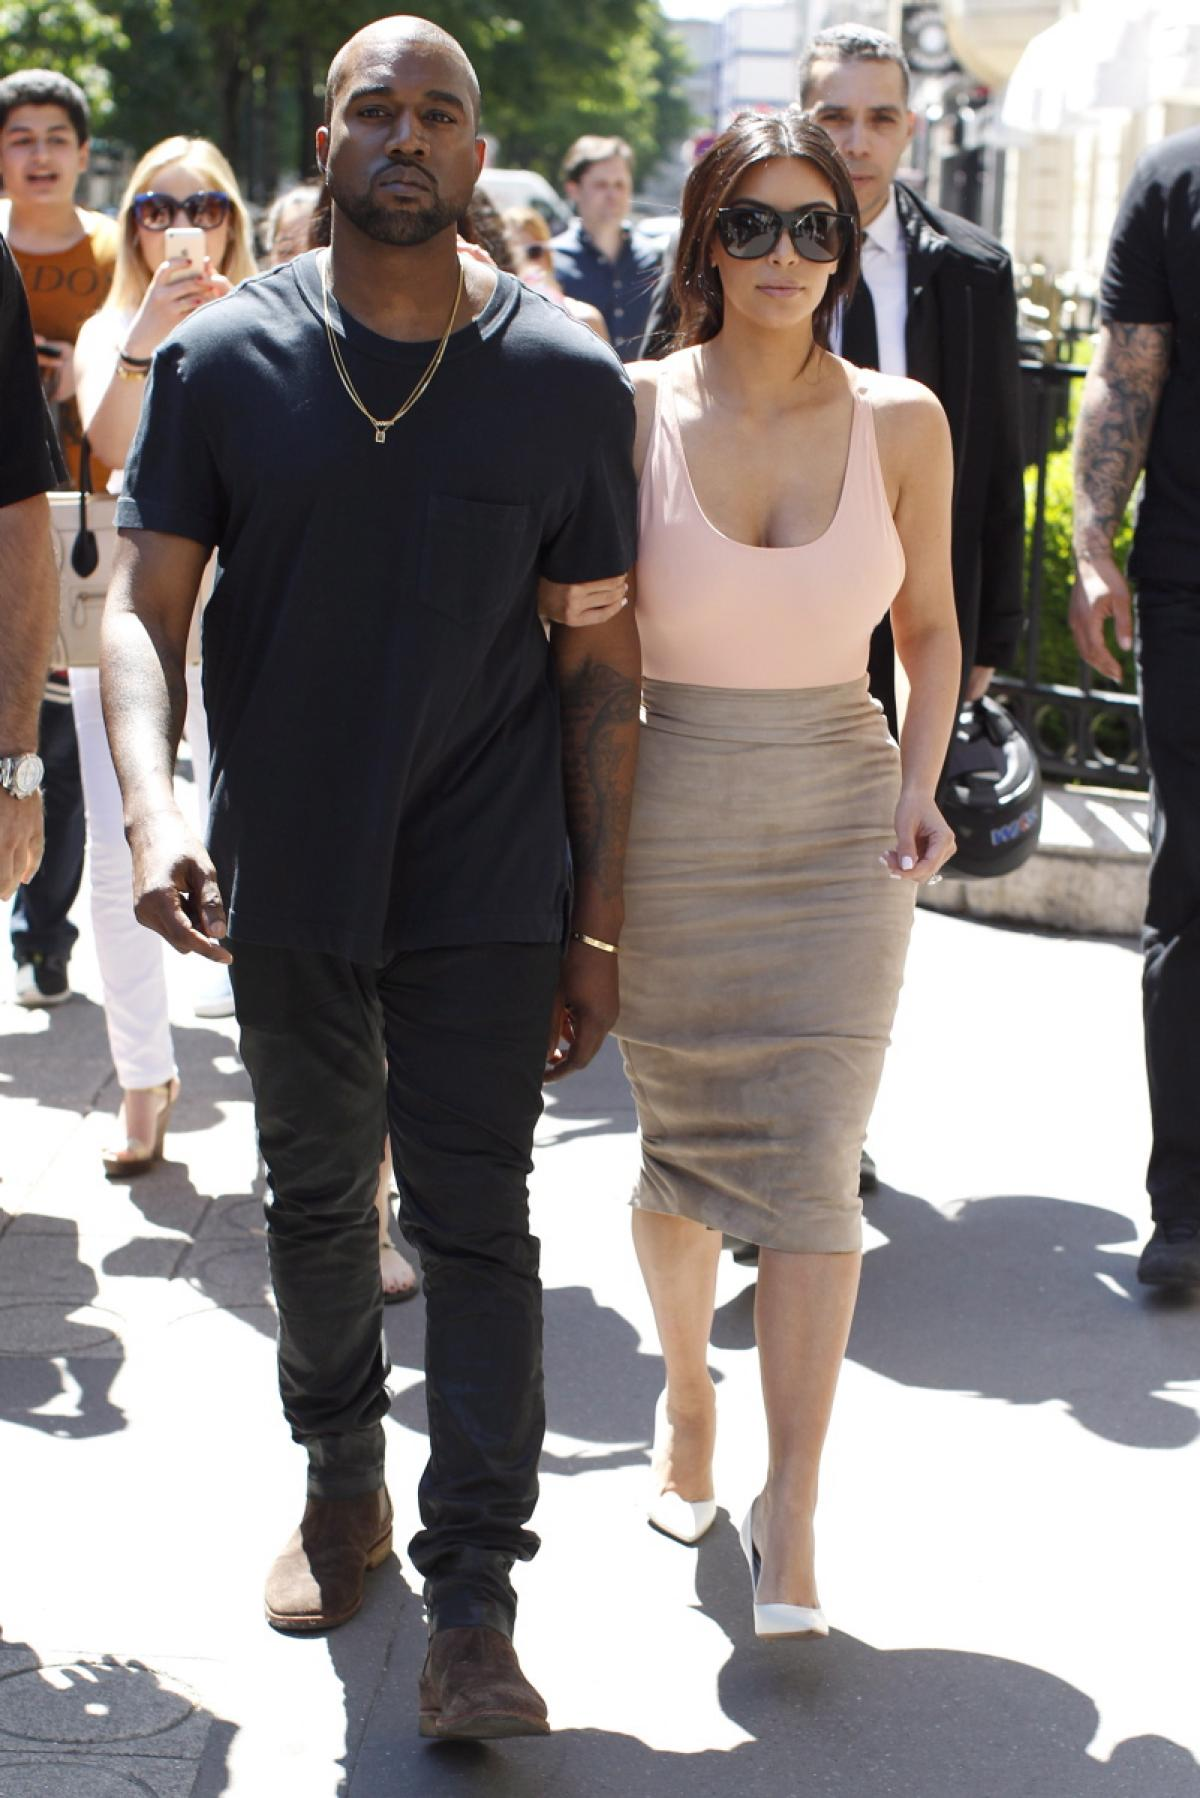 Kim with her soon to be husband Kanye West